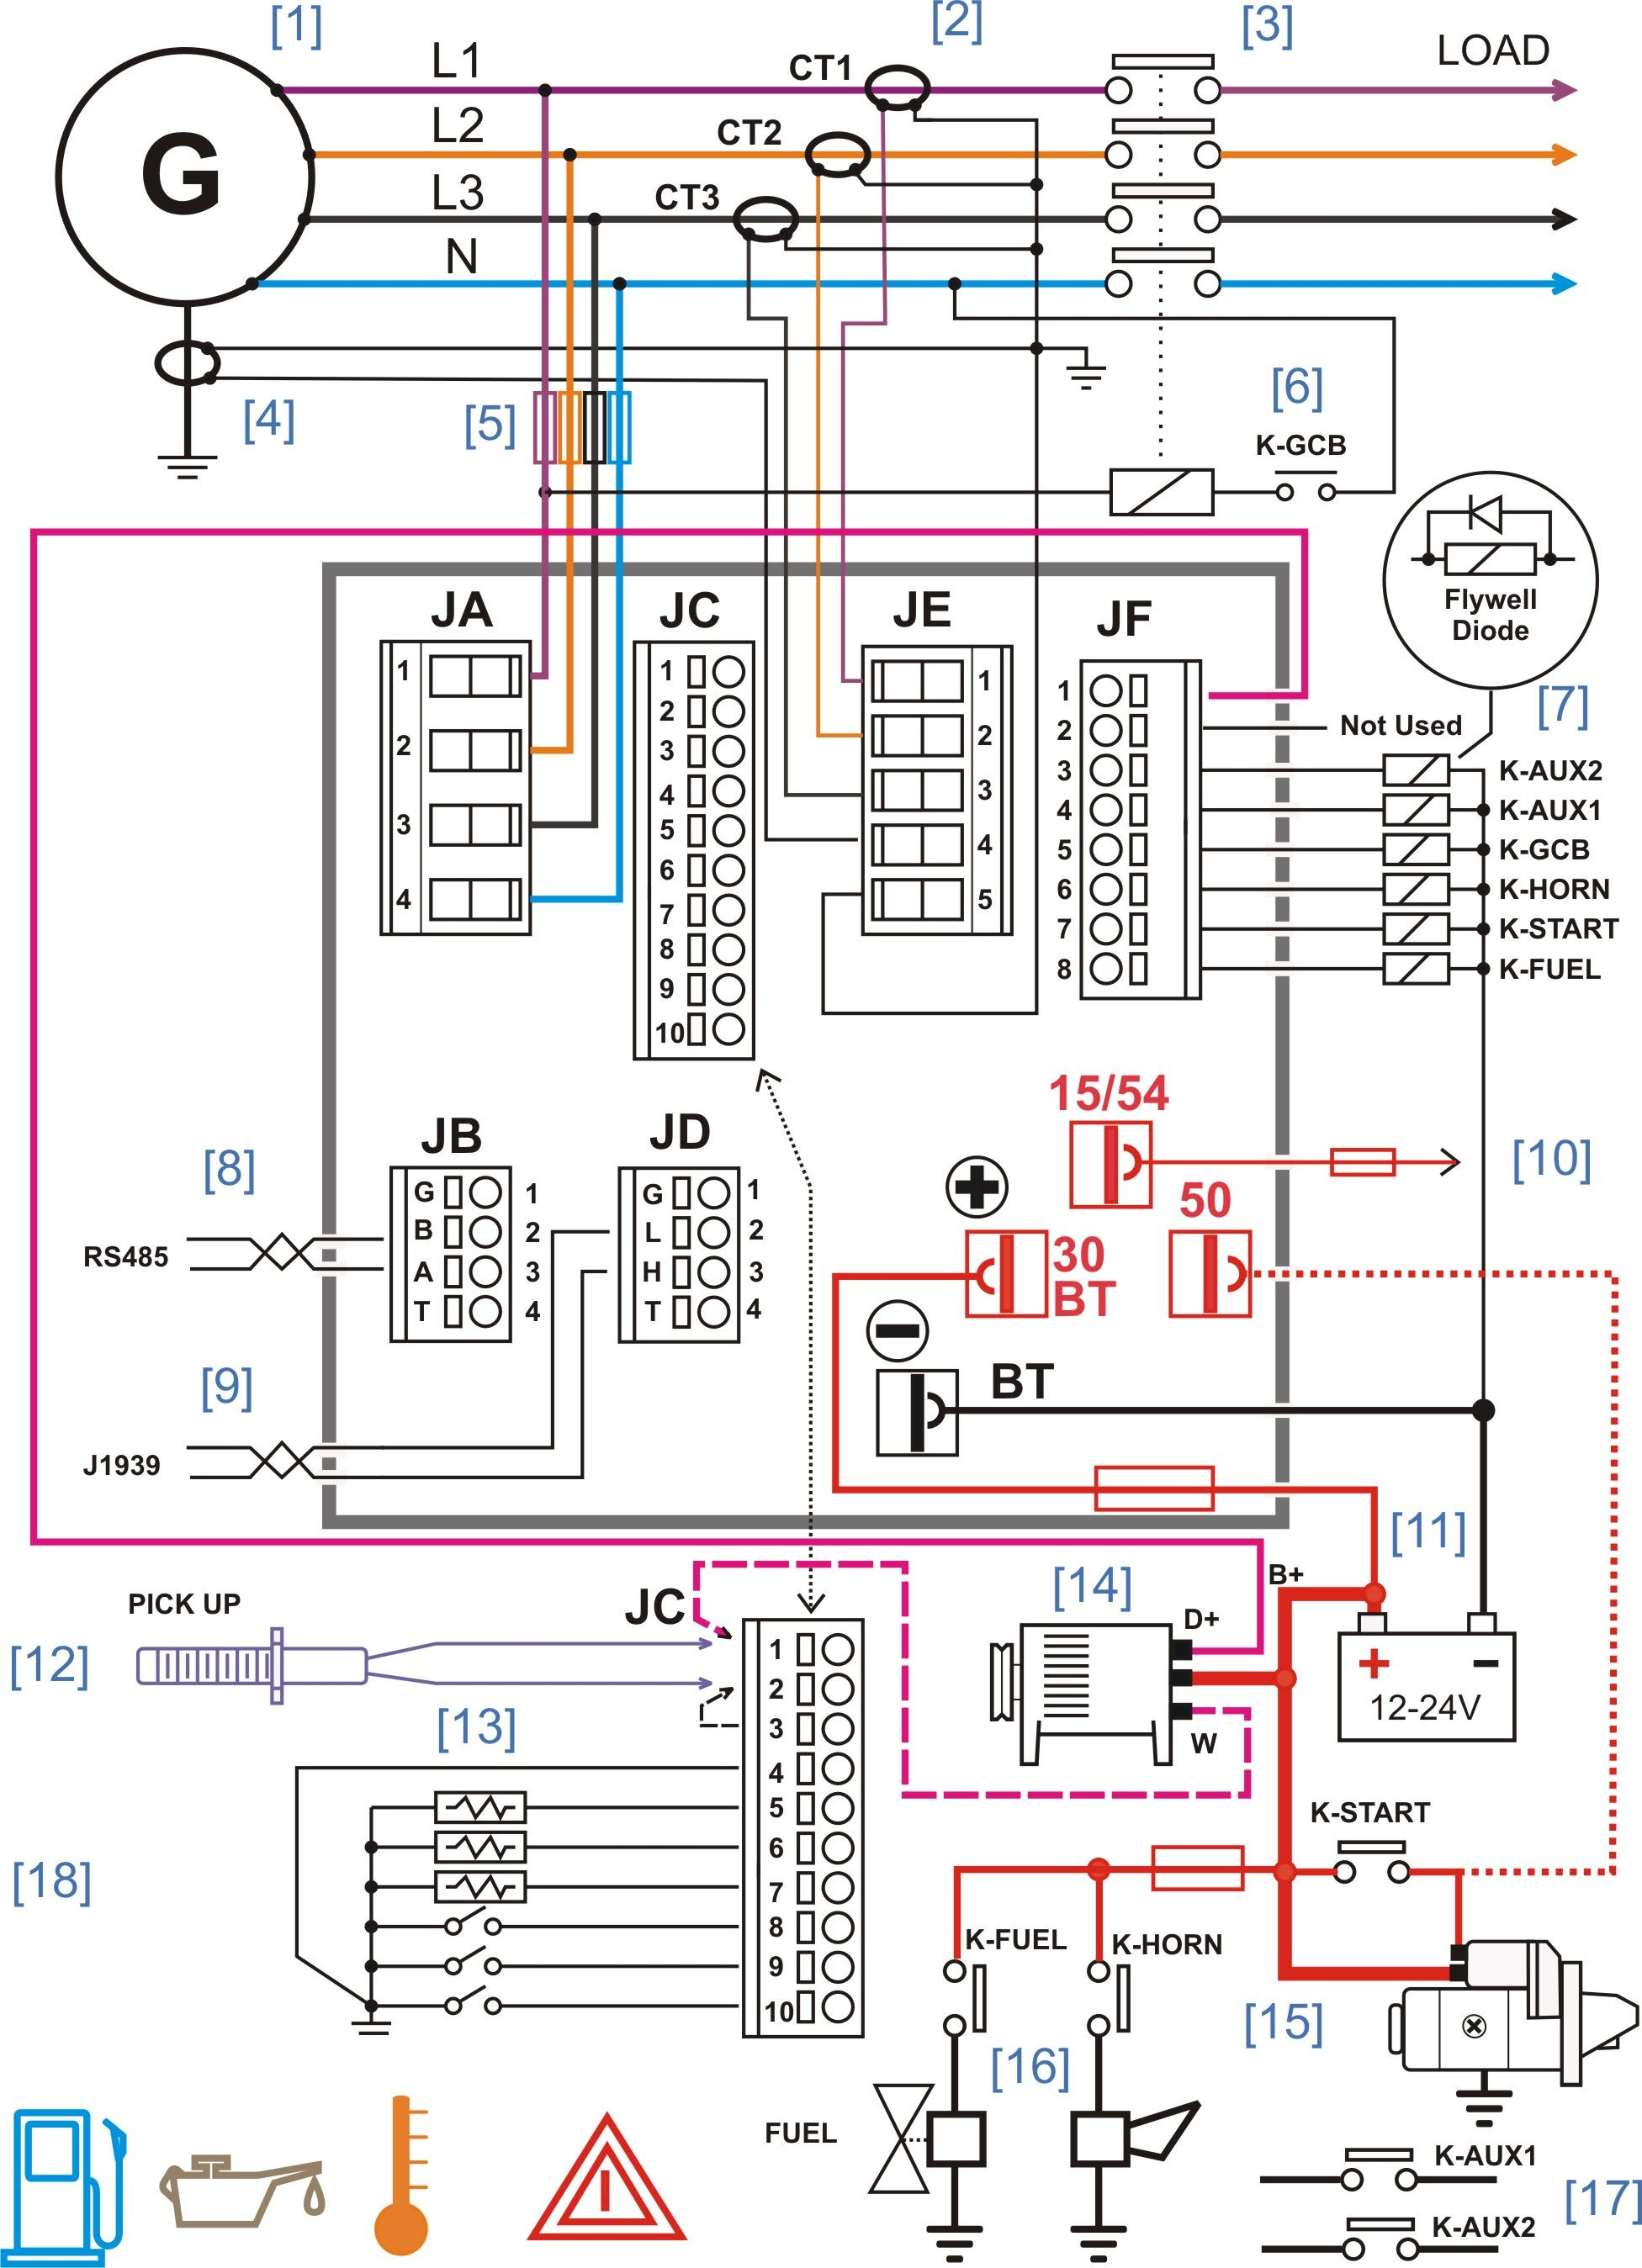 diesel generator control panel wiring diagram diesel generators rh pinterest com electrical circuit diagram control electrical control diagram hvac